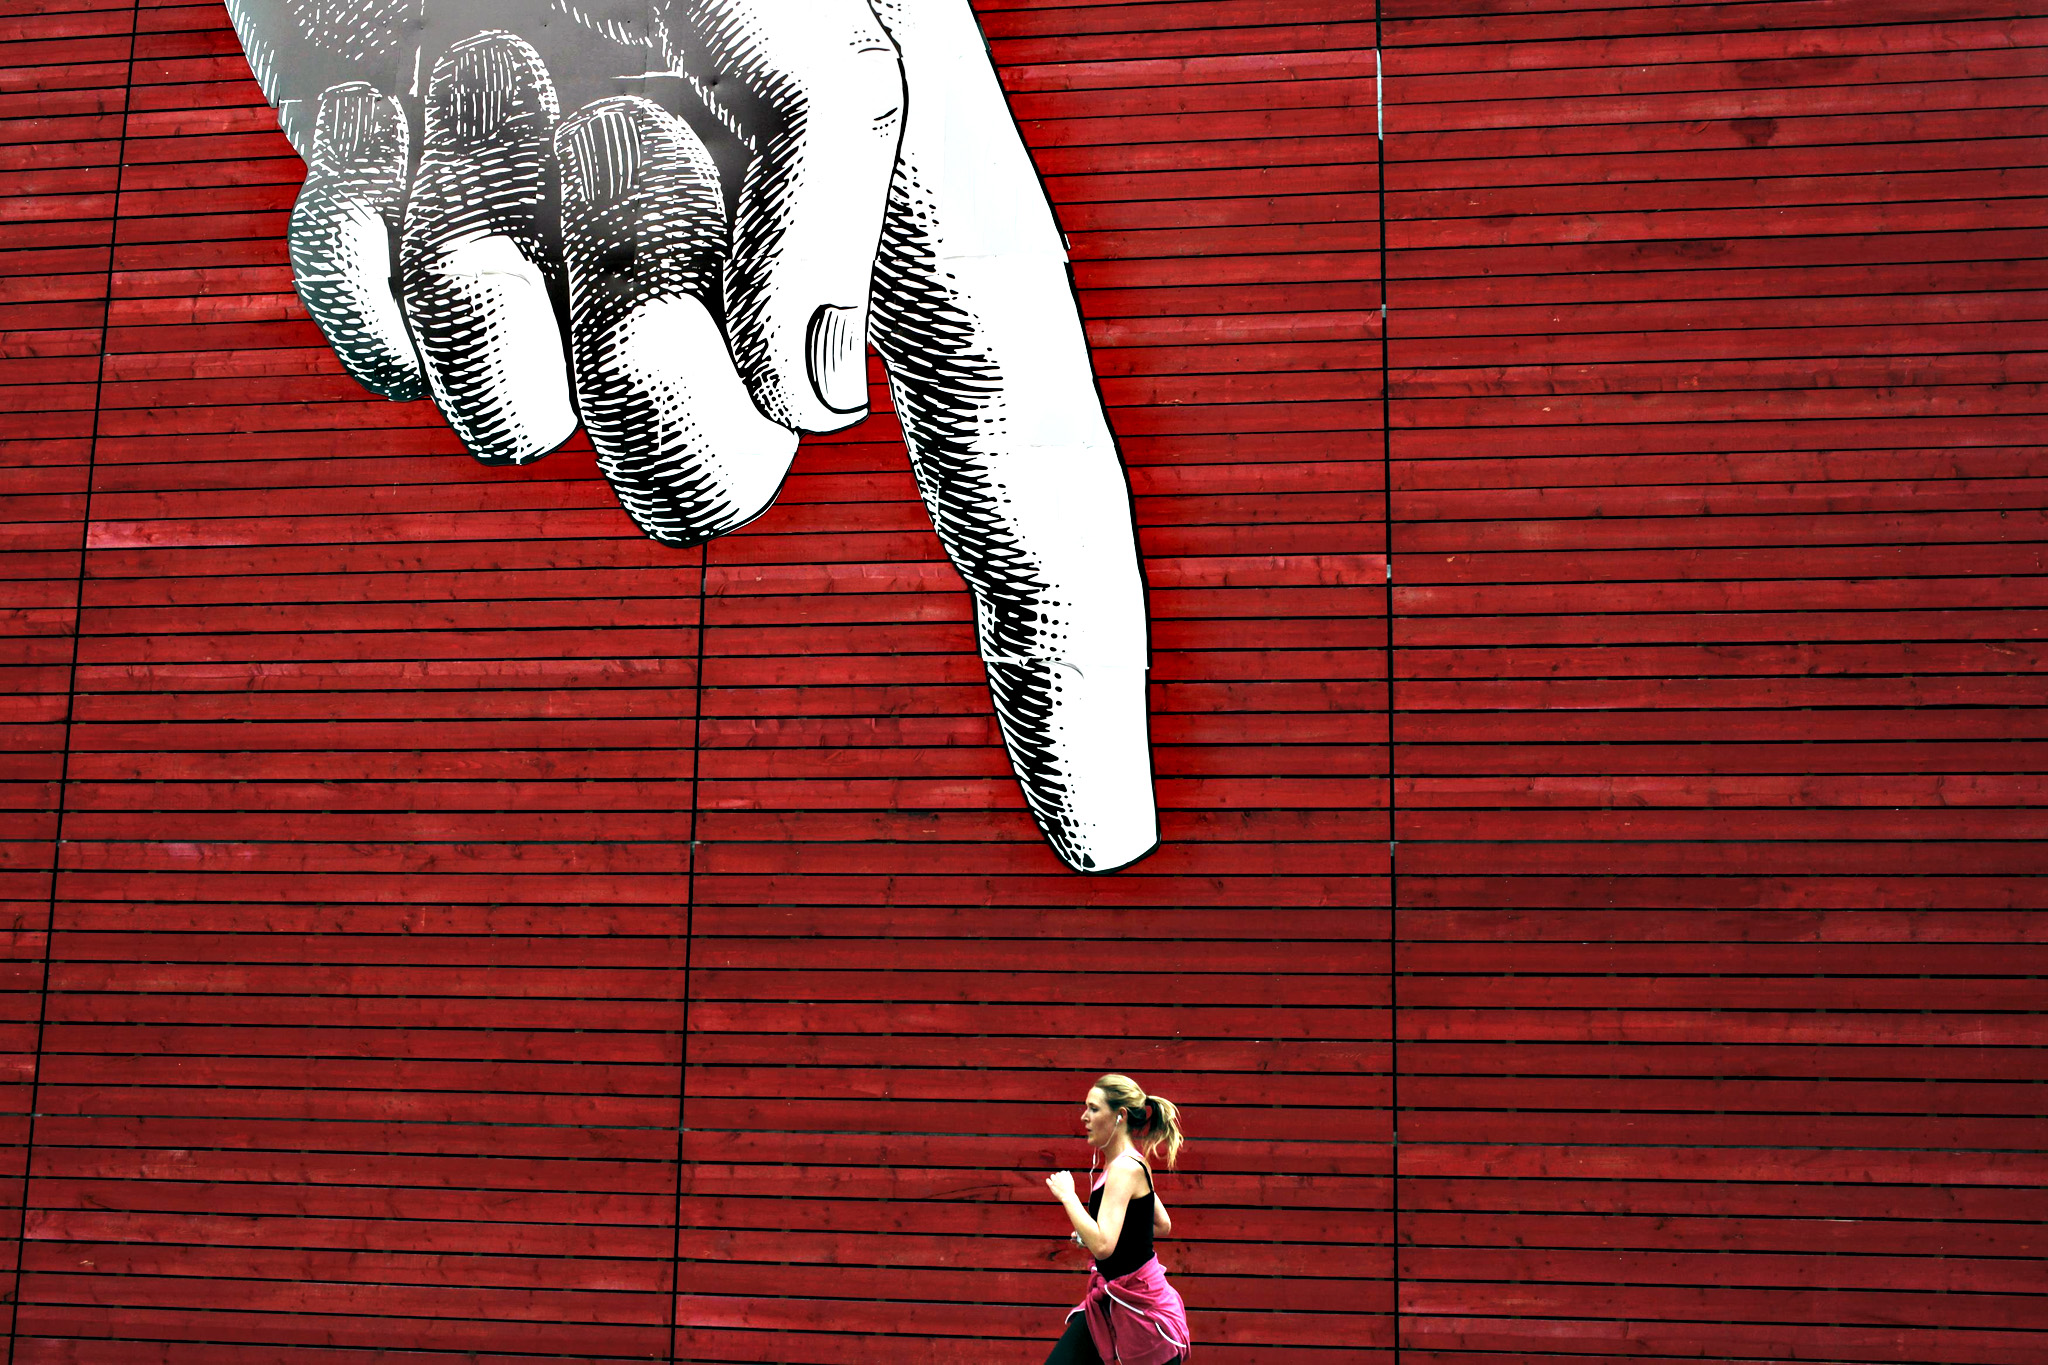 A woman runs past artwork of a large hand on a wall in central London, Britain on Monday